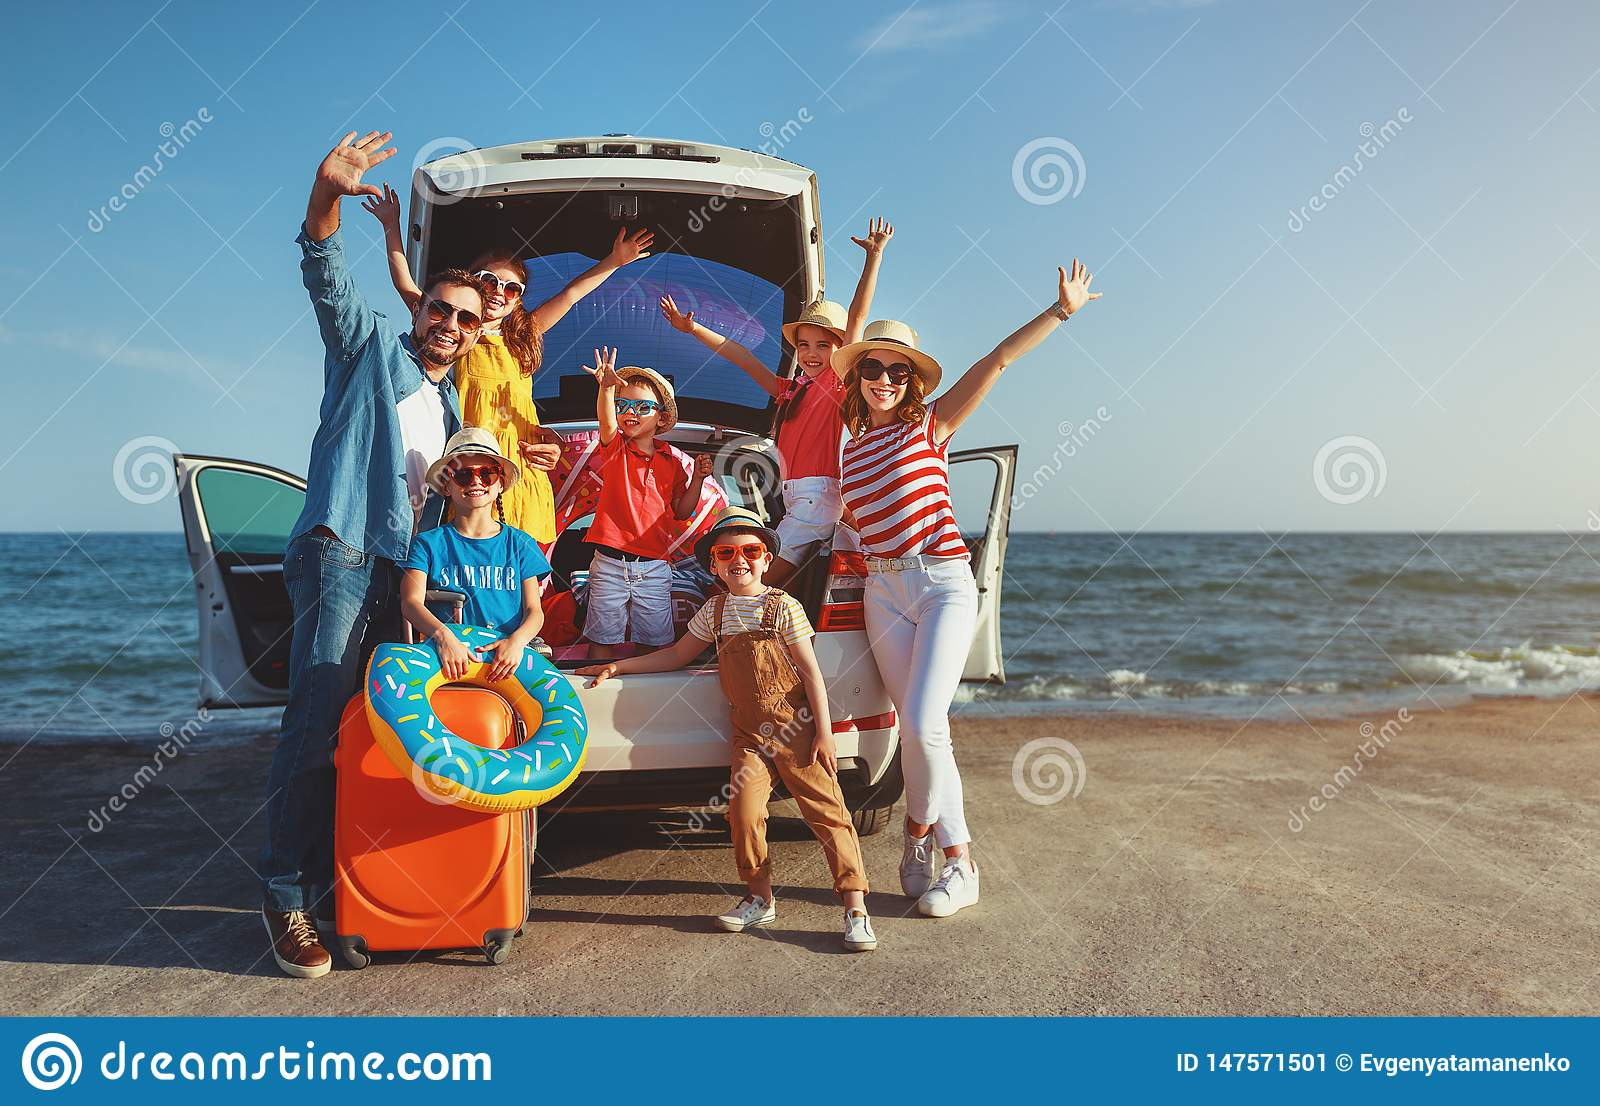 Happy large family  in summer auto journey travel by car on beach